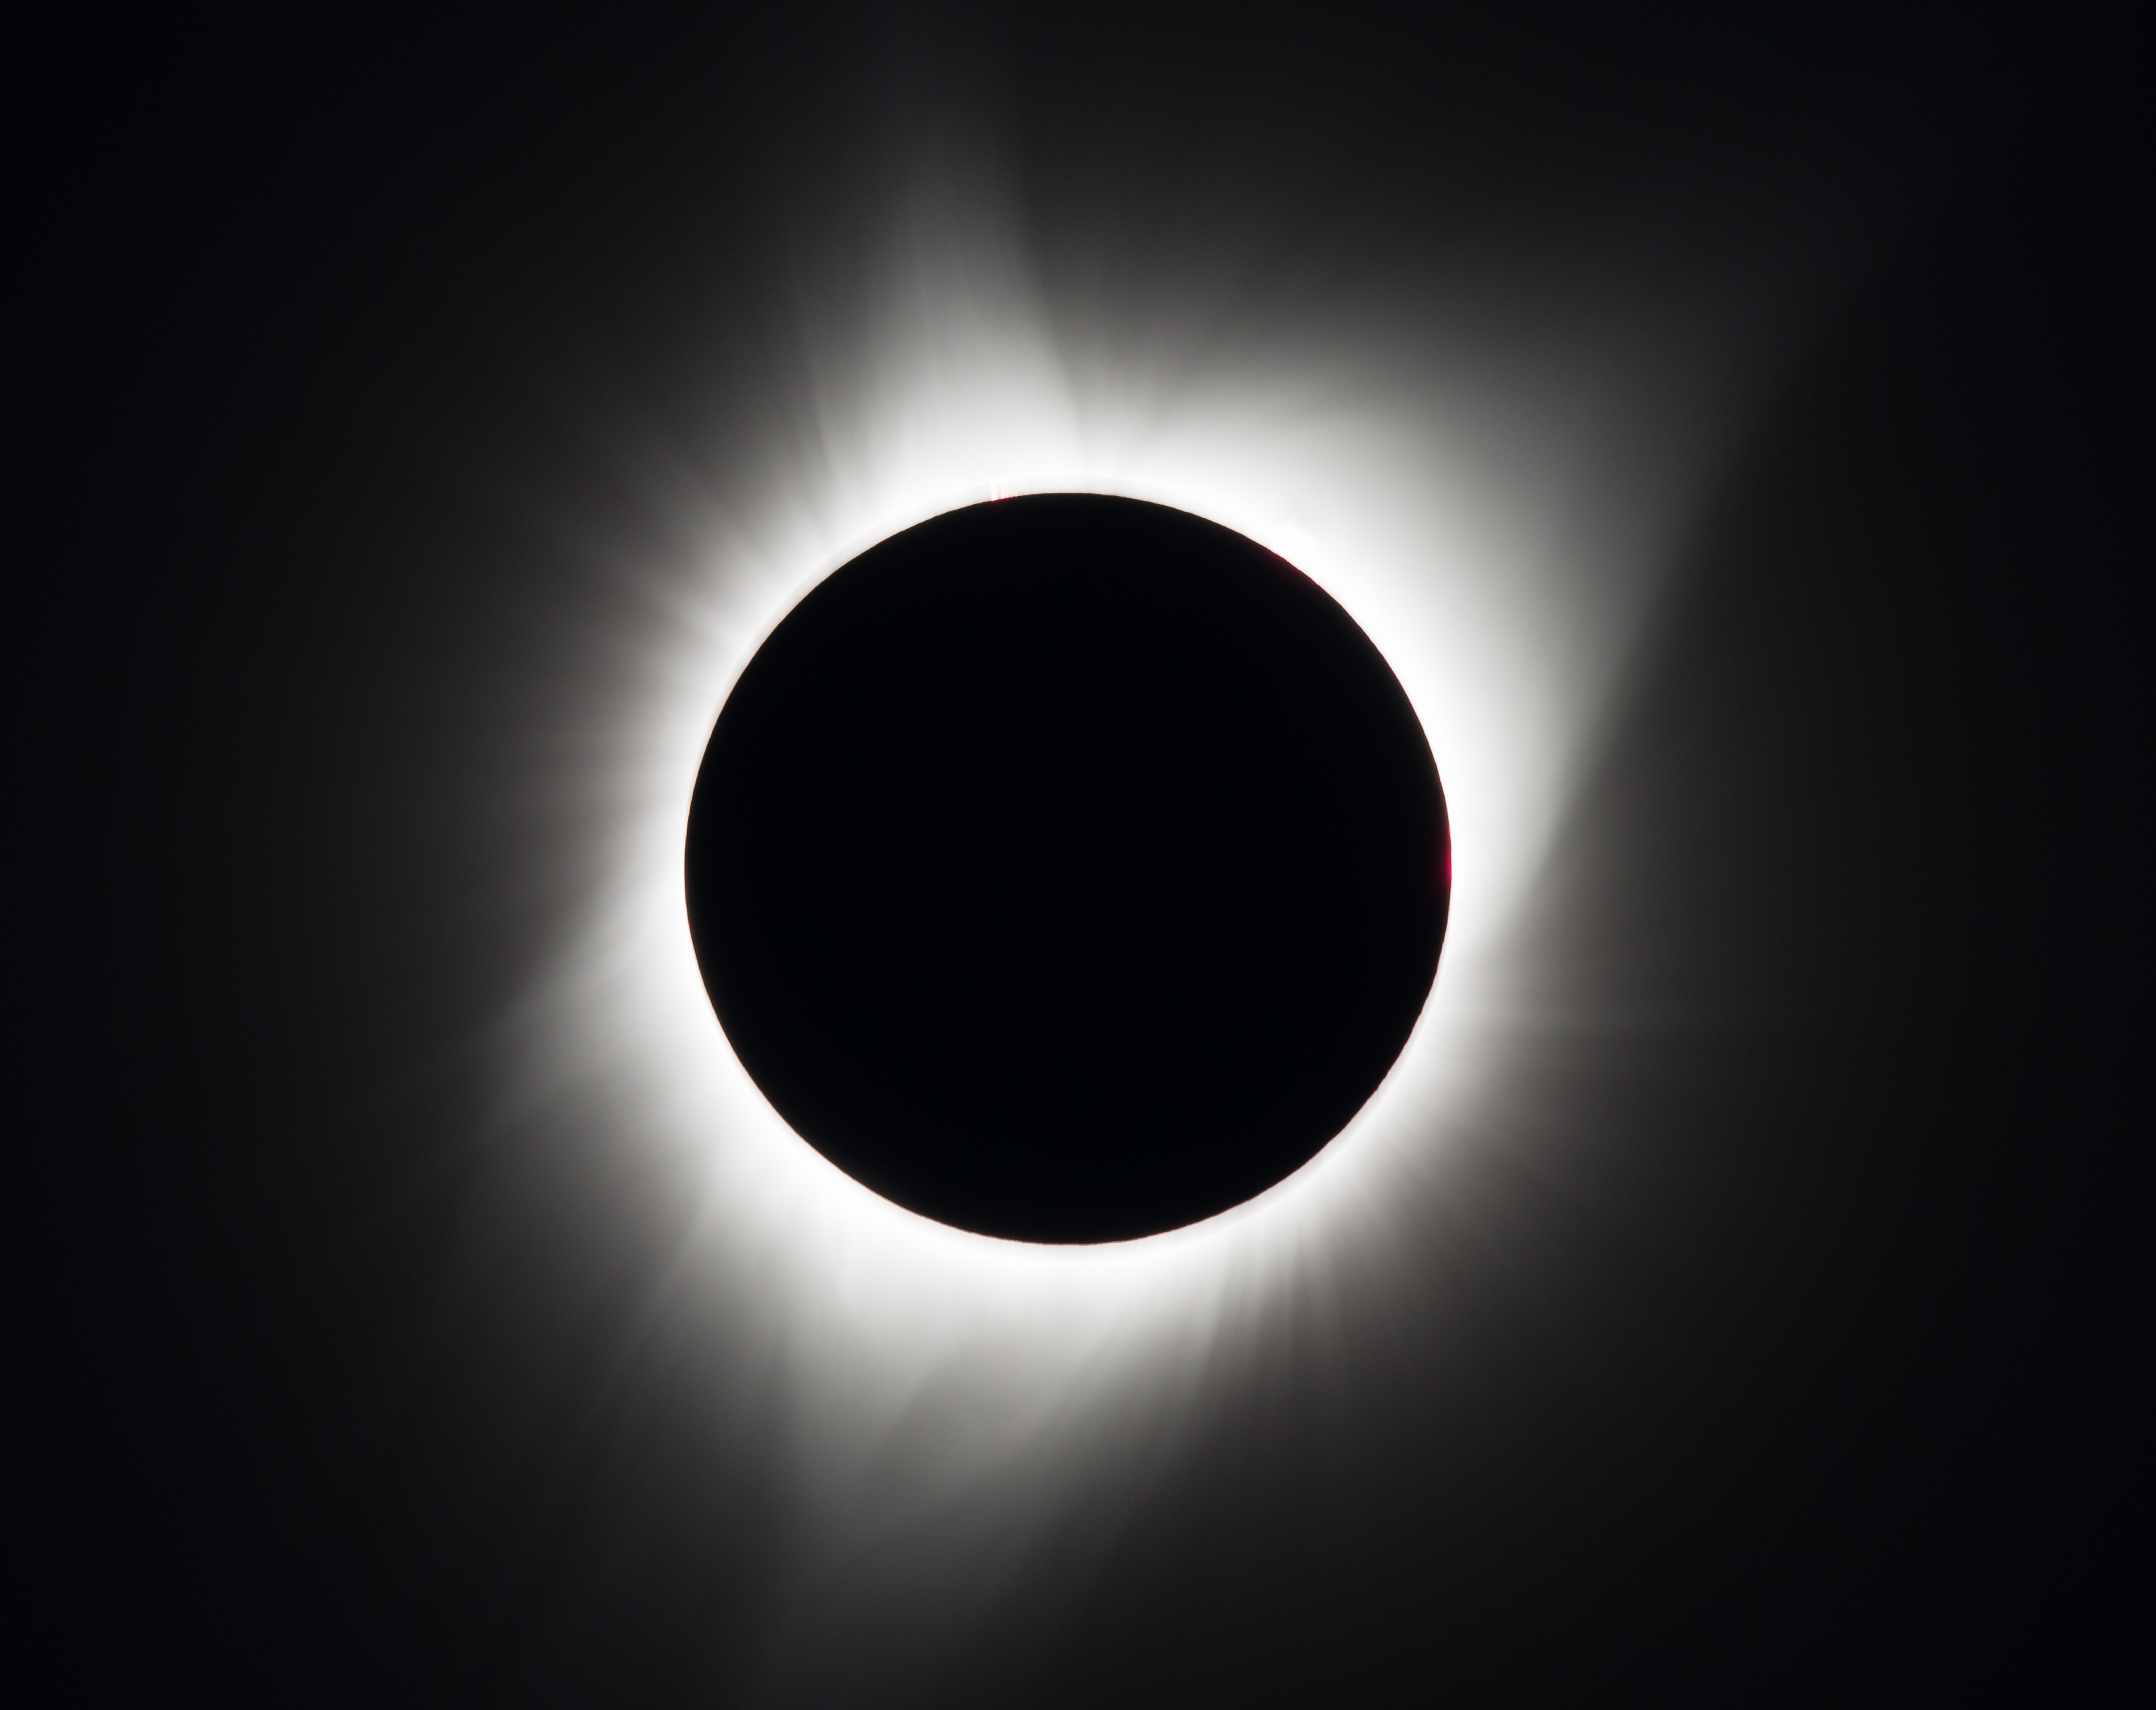 A recent study led by Rezaul Mahmood, Director of the High Plains Regional Climate Center, detailed how the Aug. 21, 2017 total solar eclipse affected atmospheric conditions in Kentucky. Aubrey Gemignani, NASA